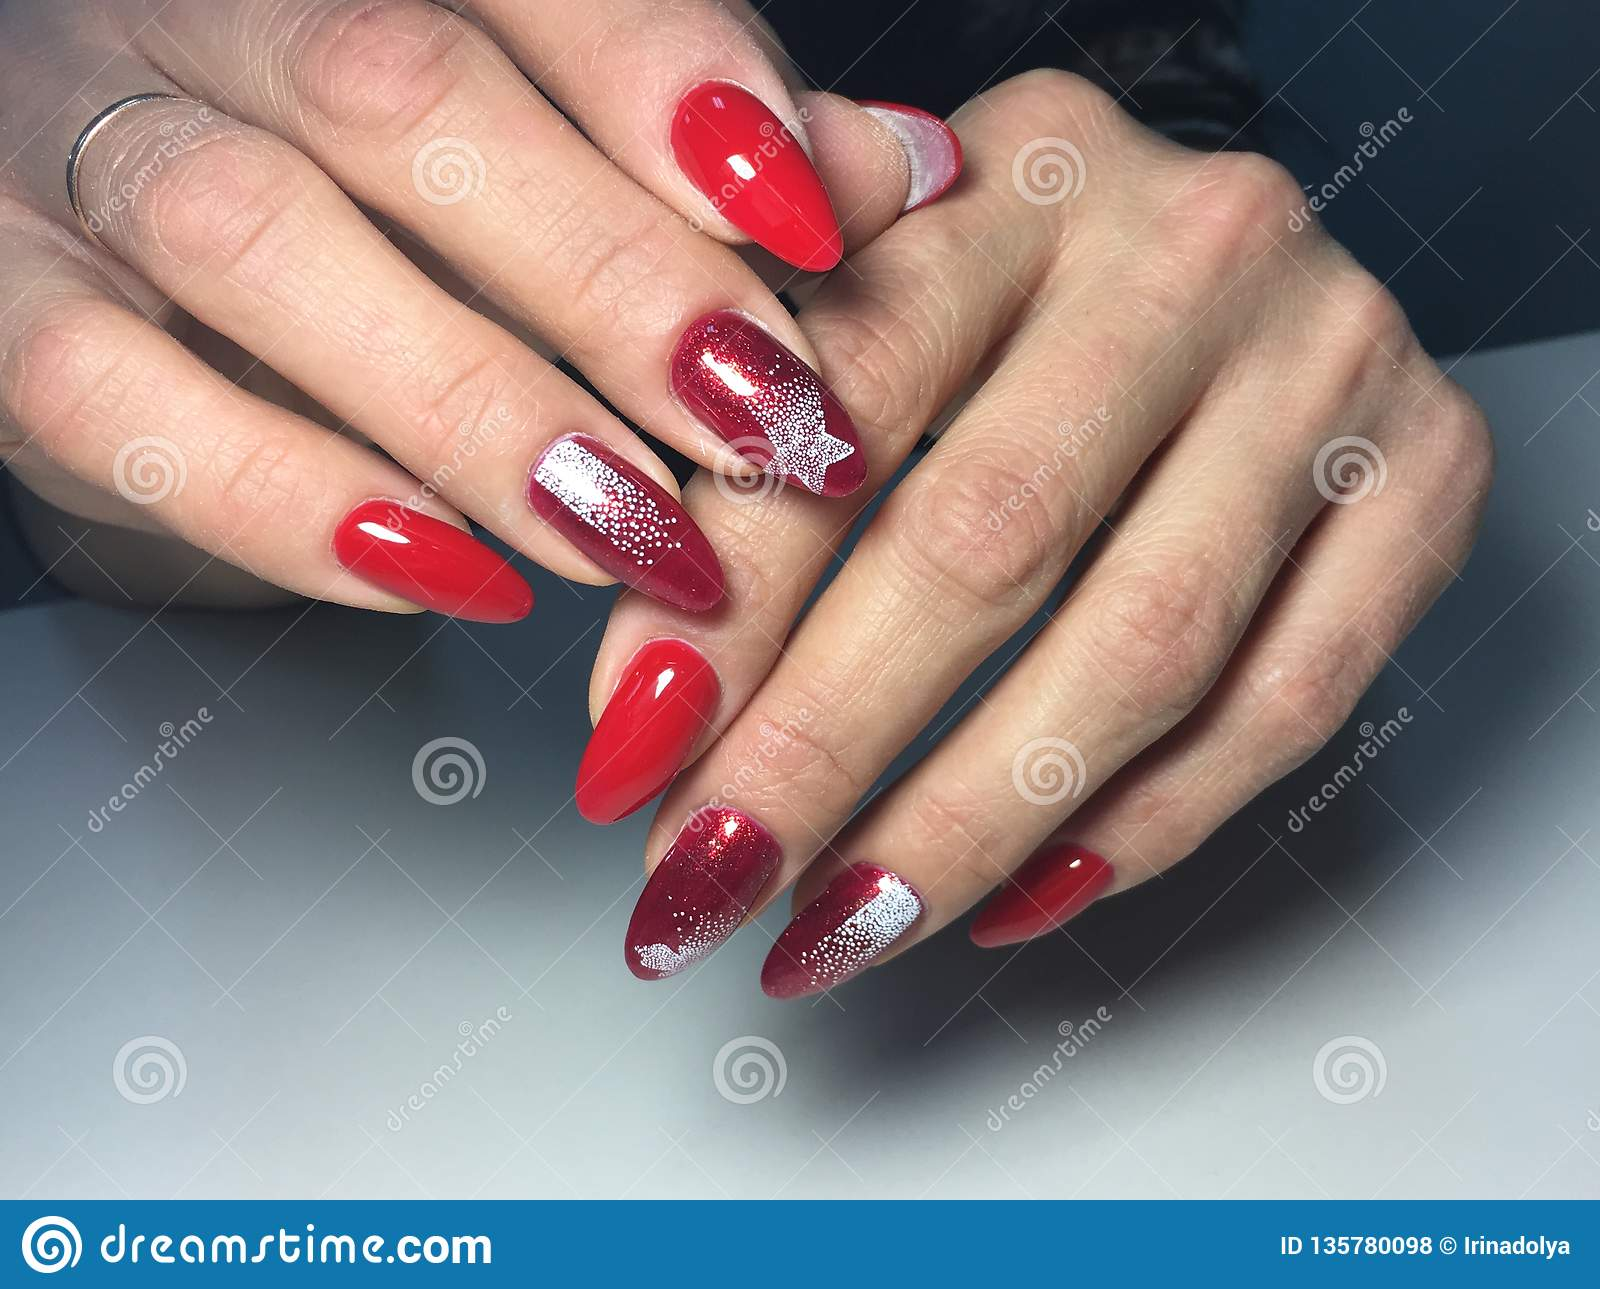 fashion red manicure with white snowflakes on long nails